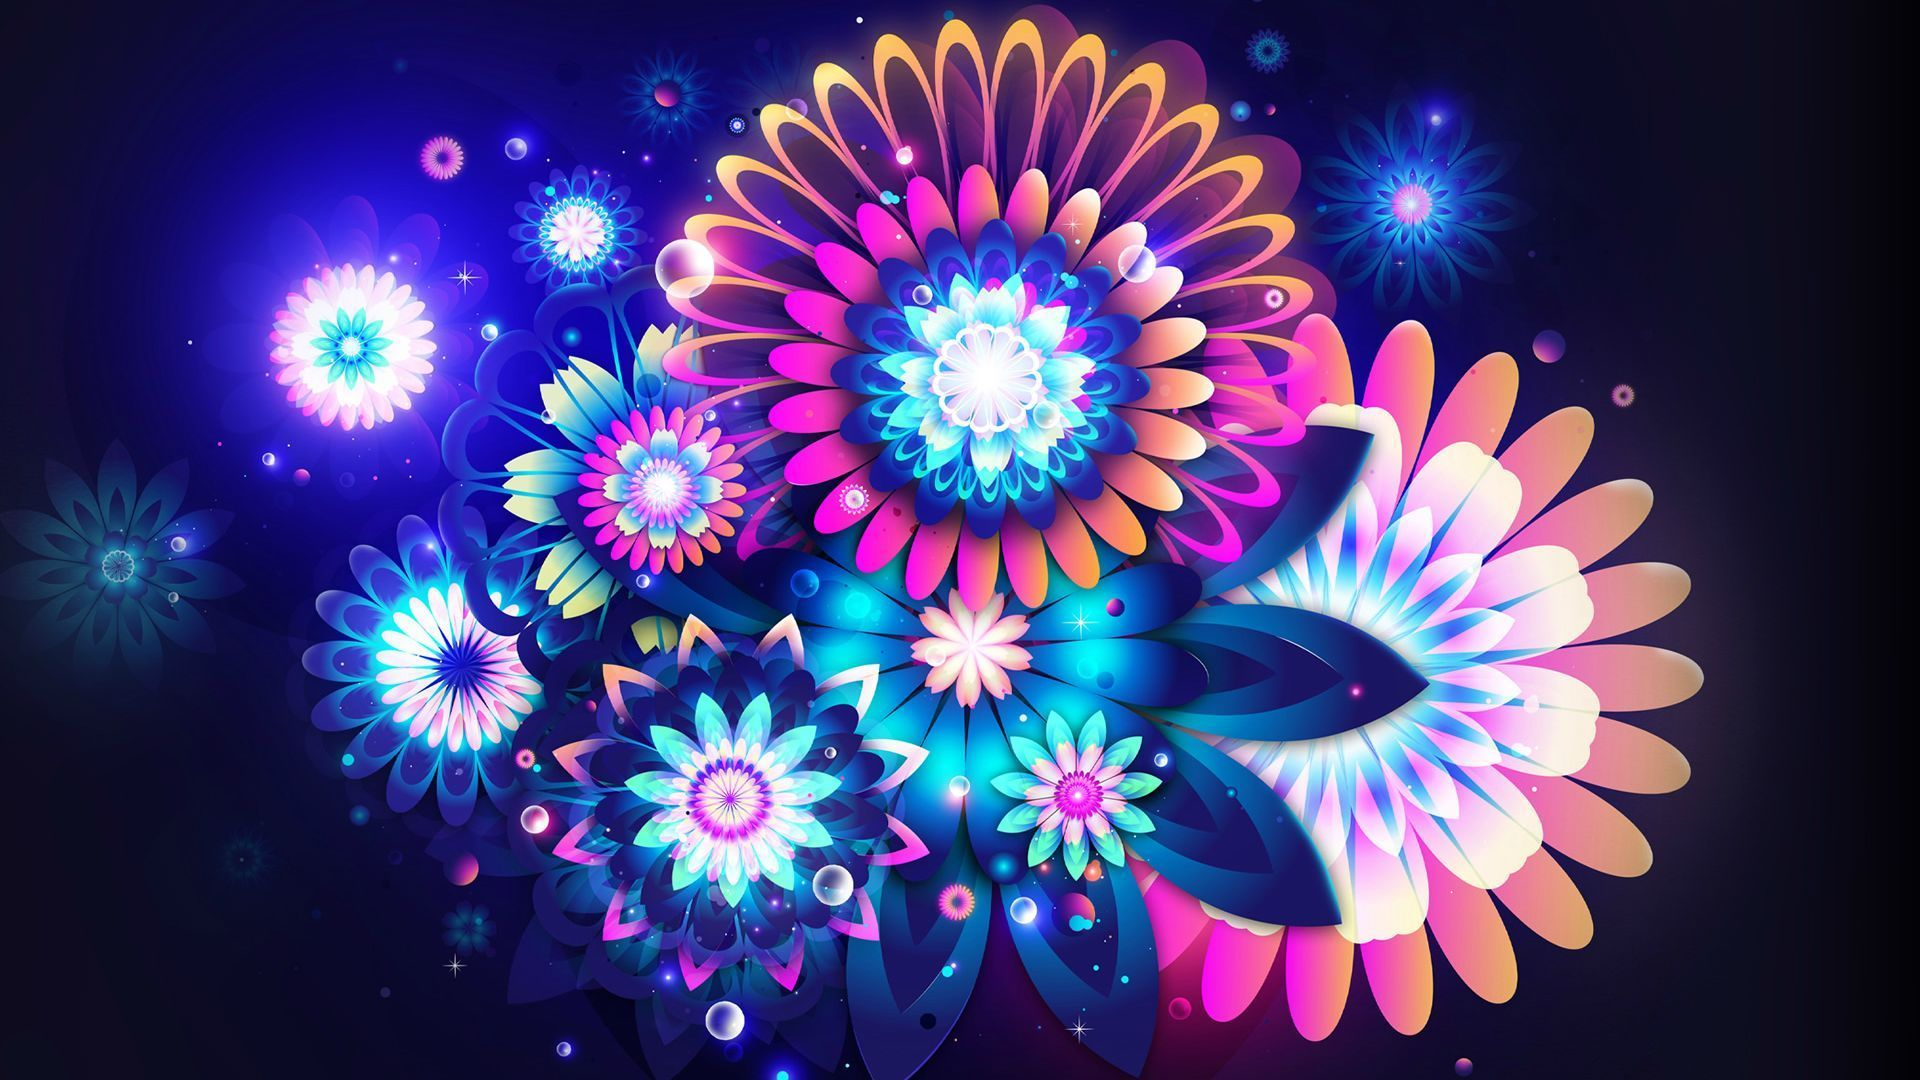 Free 3d Wallpaper Backgrounds Colorful Wallpaper Tumblr Pixelstalk Net